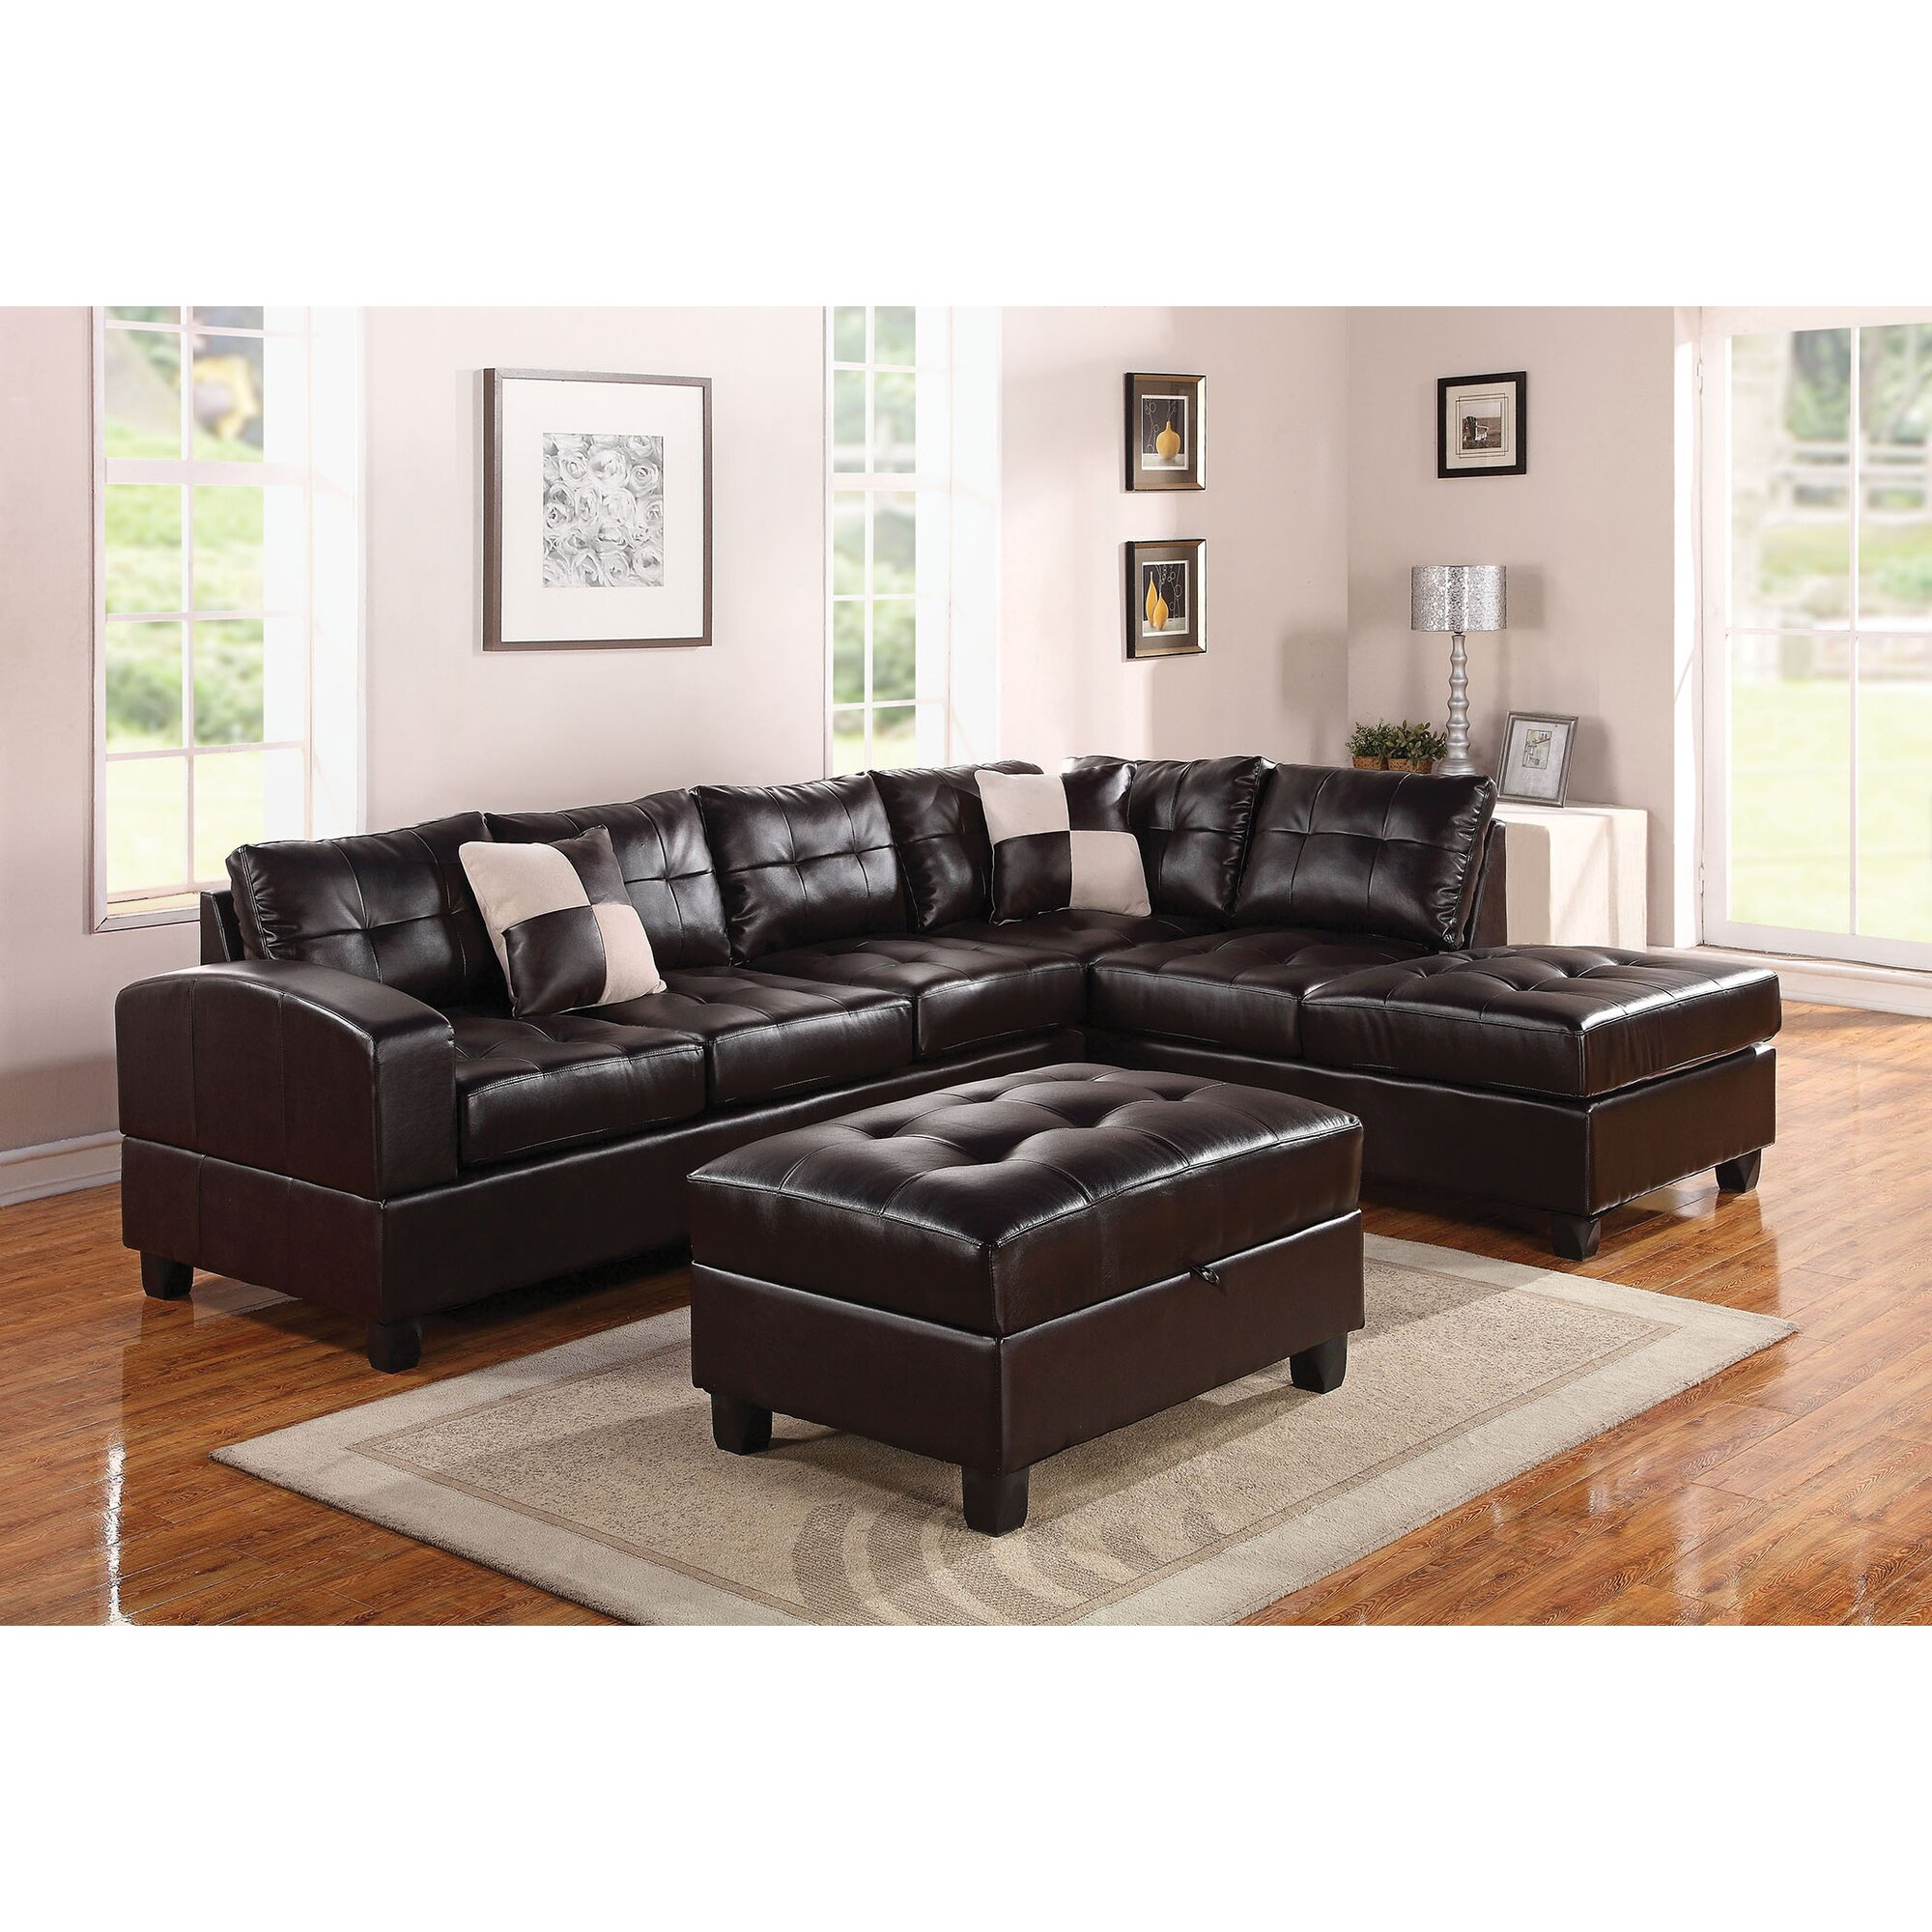 Ashley Sectional Patola Park Sofa With Cuddler Patola Park 3